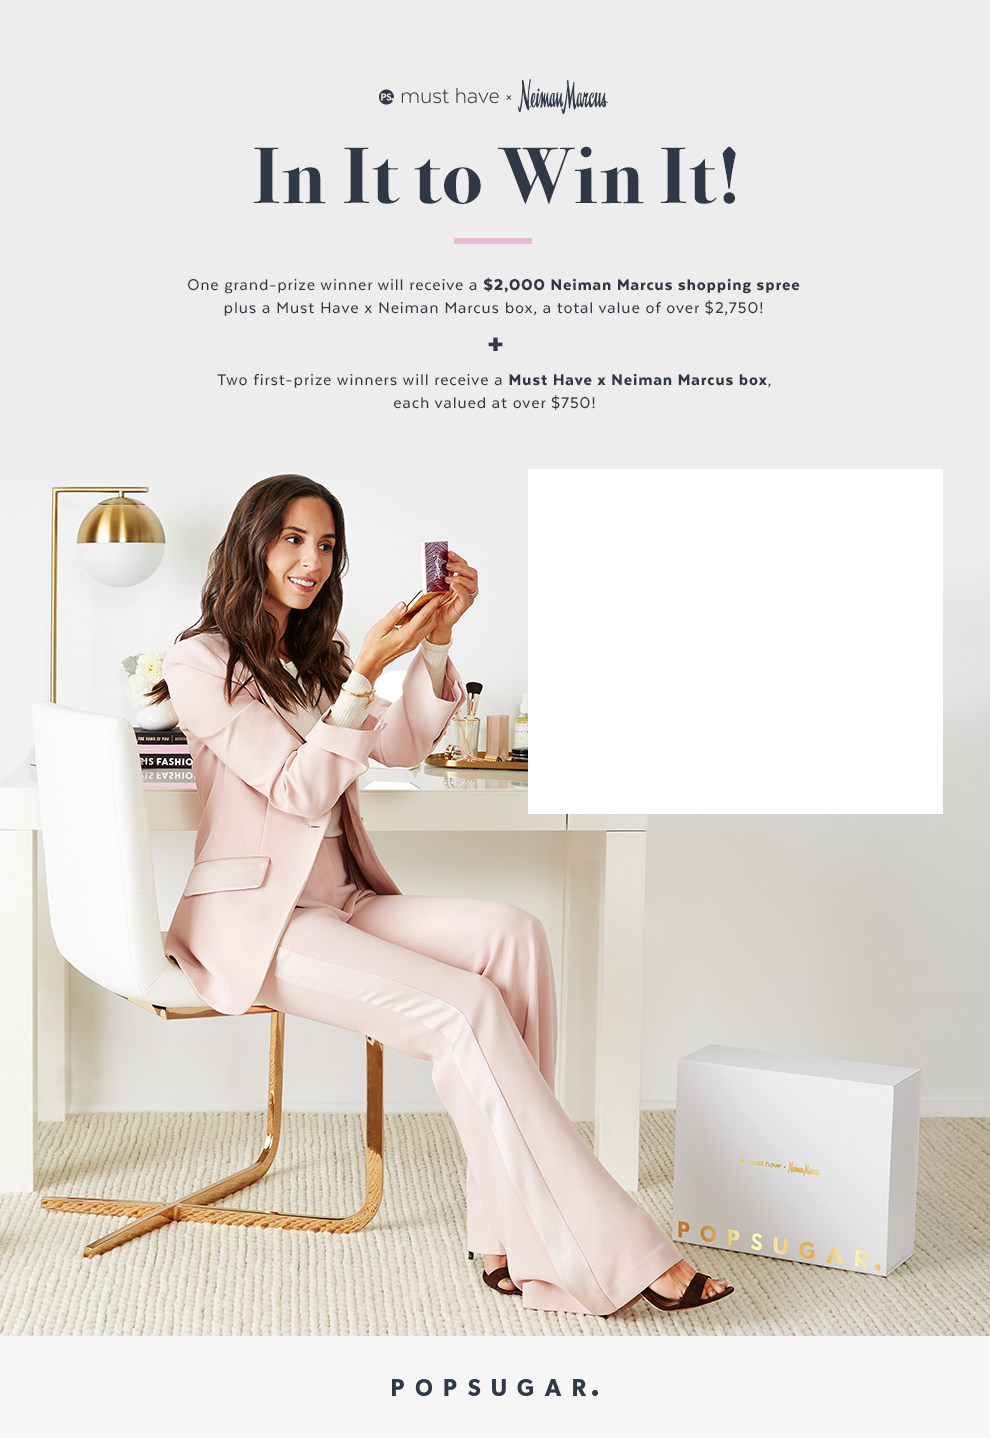 Must Have x Neiman Marcus Box Sweepstakes